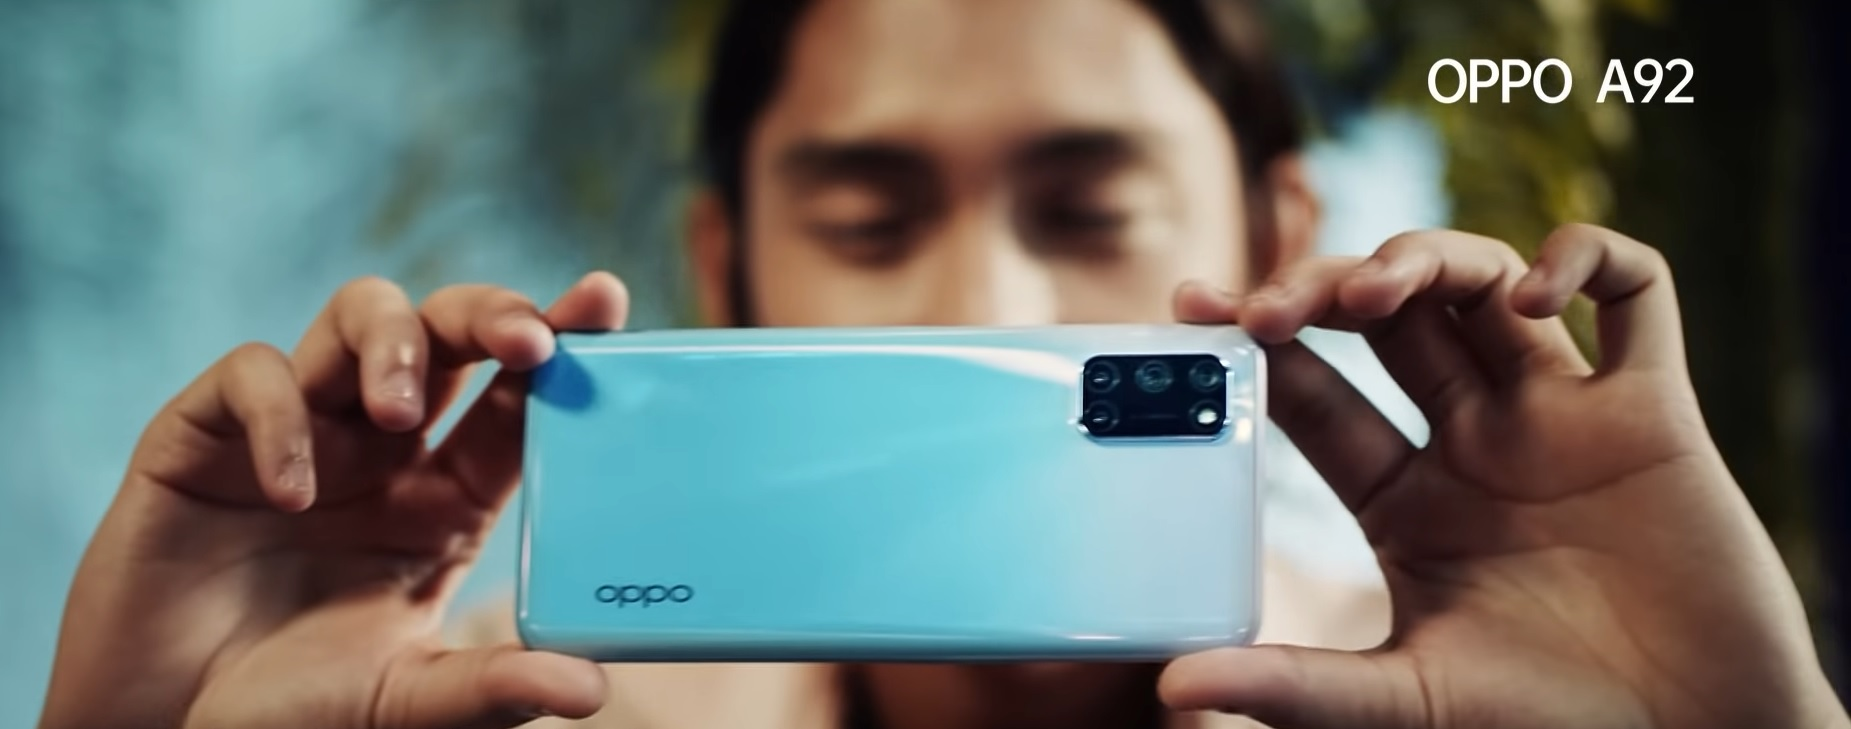 Oppo A92 Smartphone With Neo-Display And 5,000mAh Battery Launched